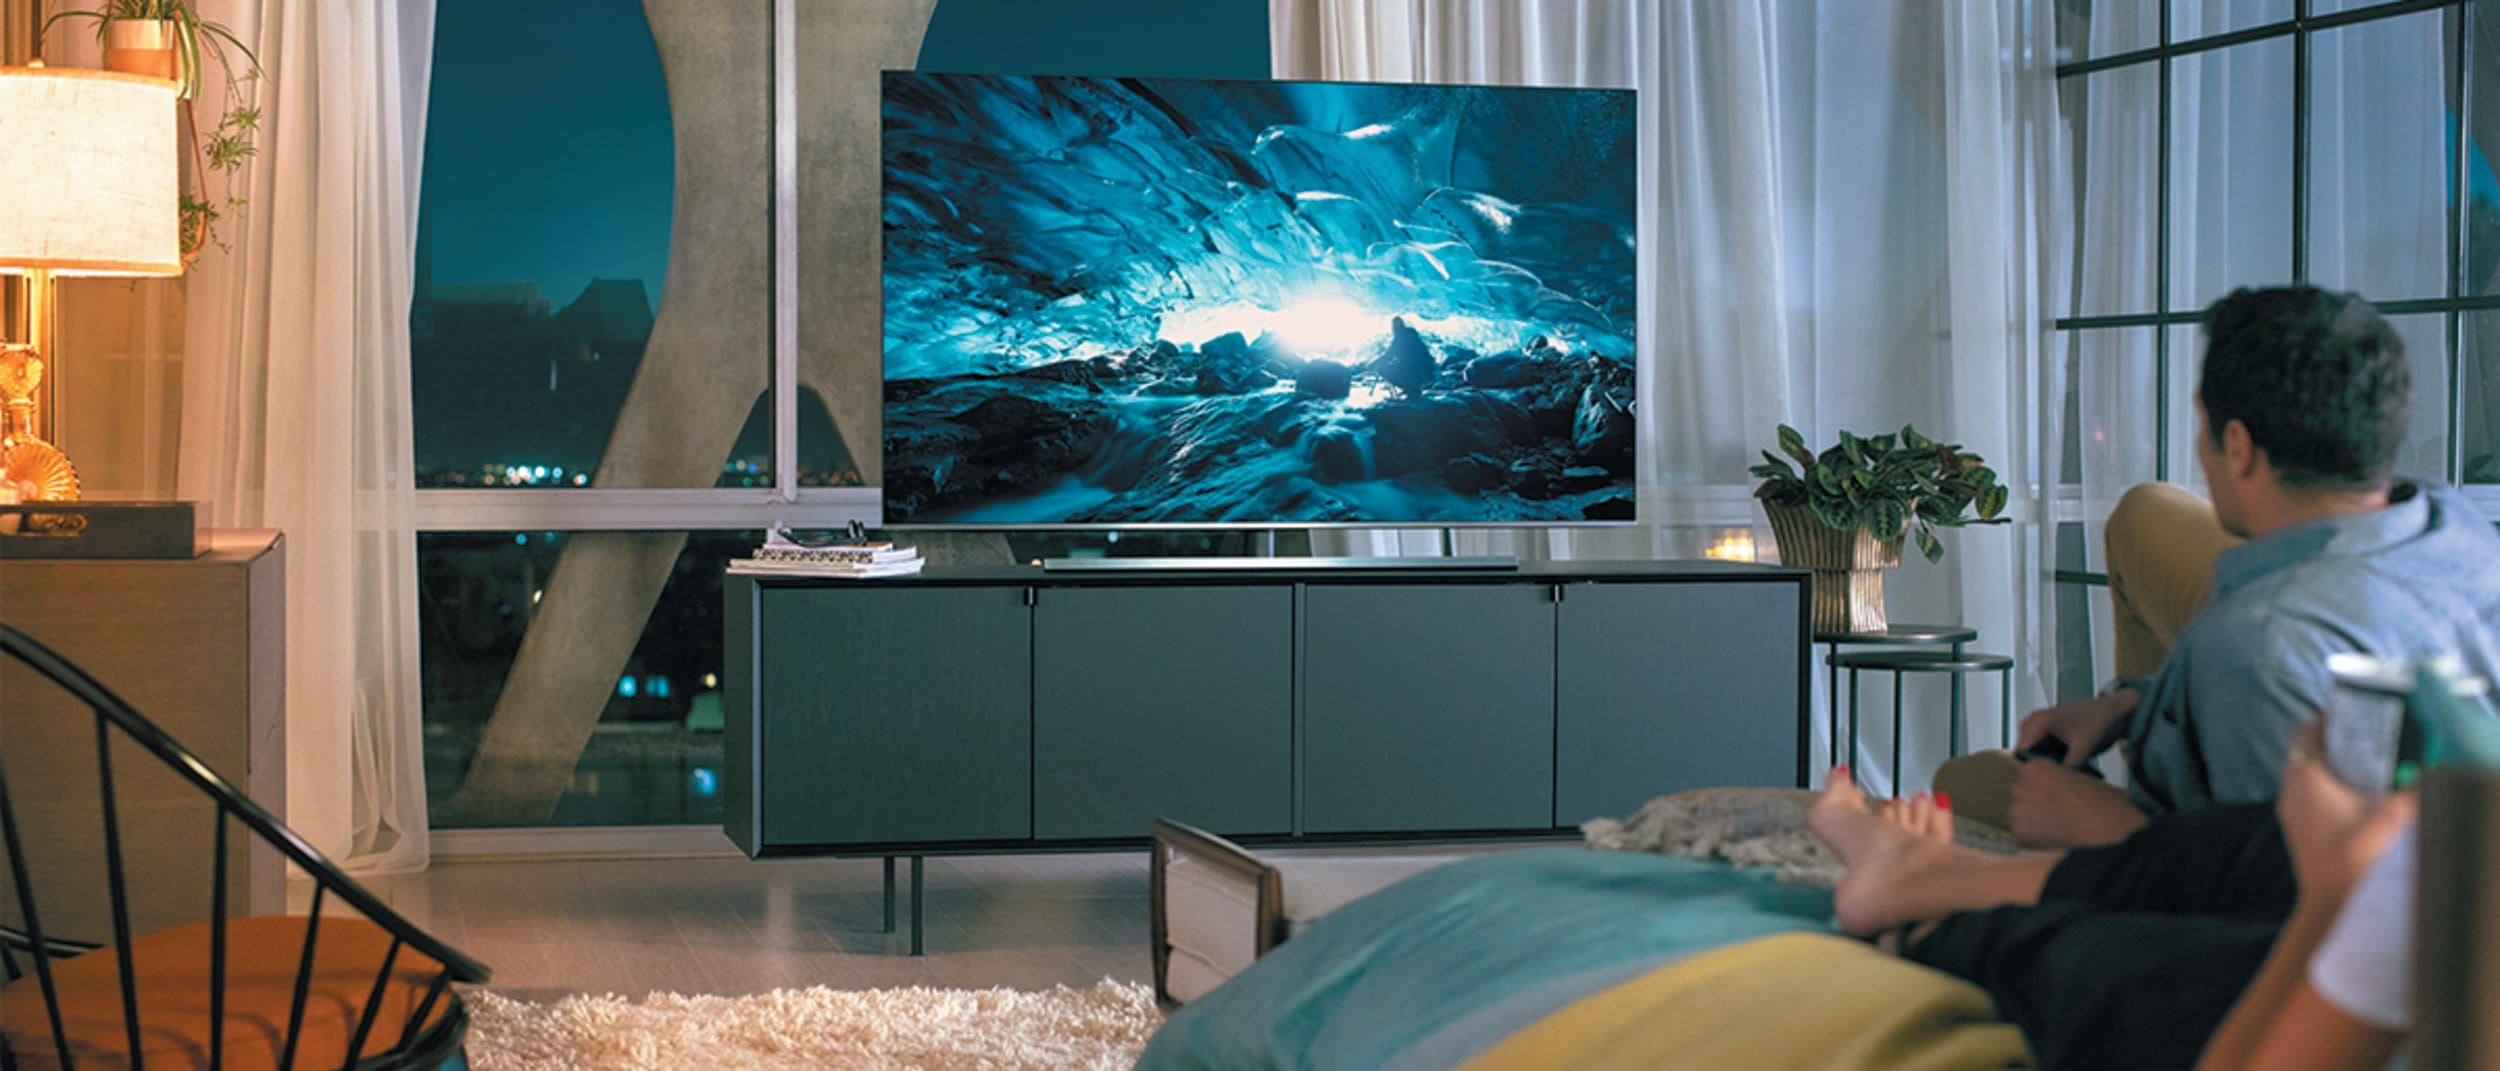 Bing Lee: Free delivery & tabletop install on select premium TVs